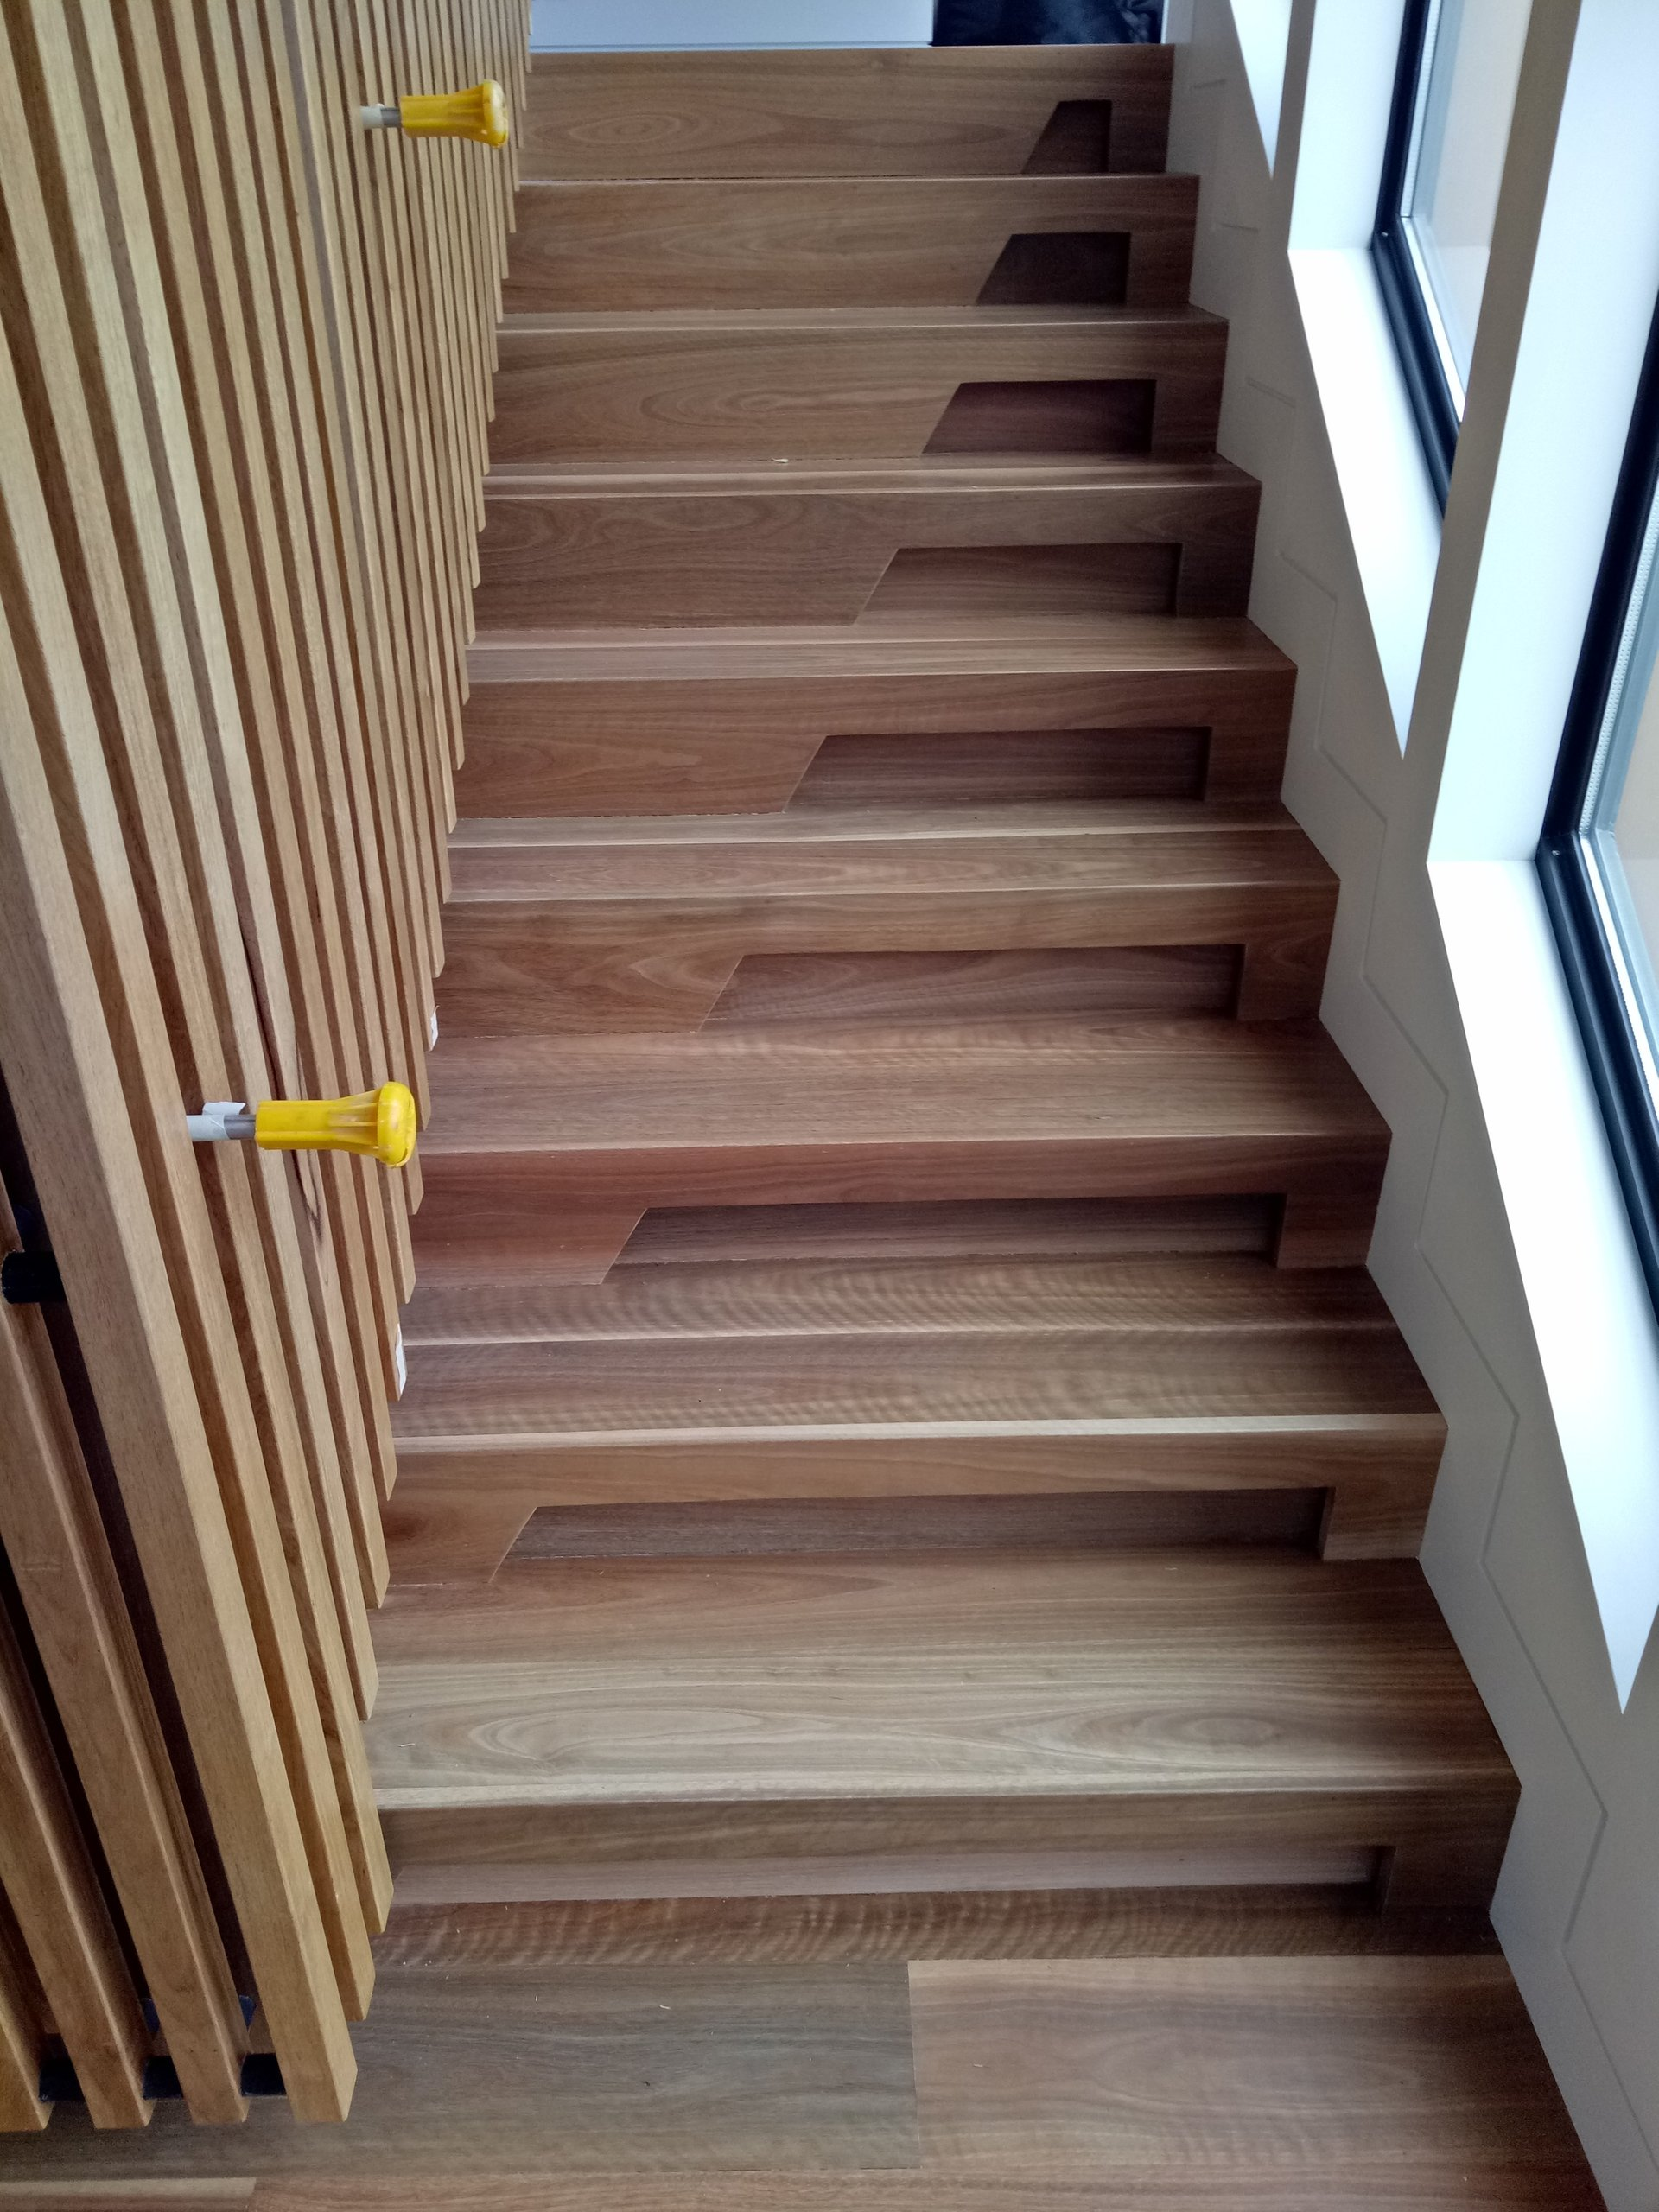 Value timber floors